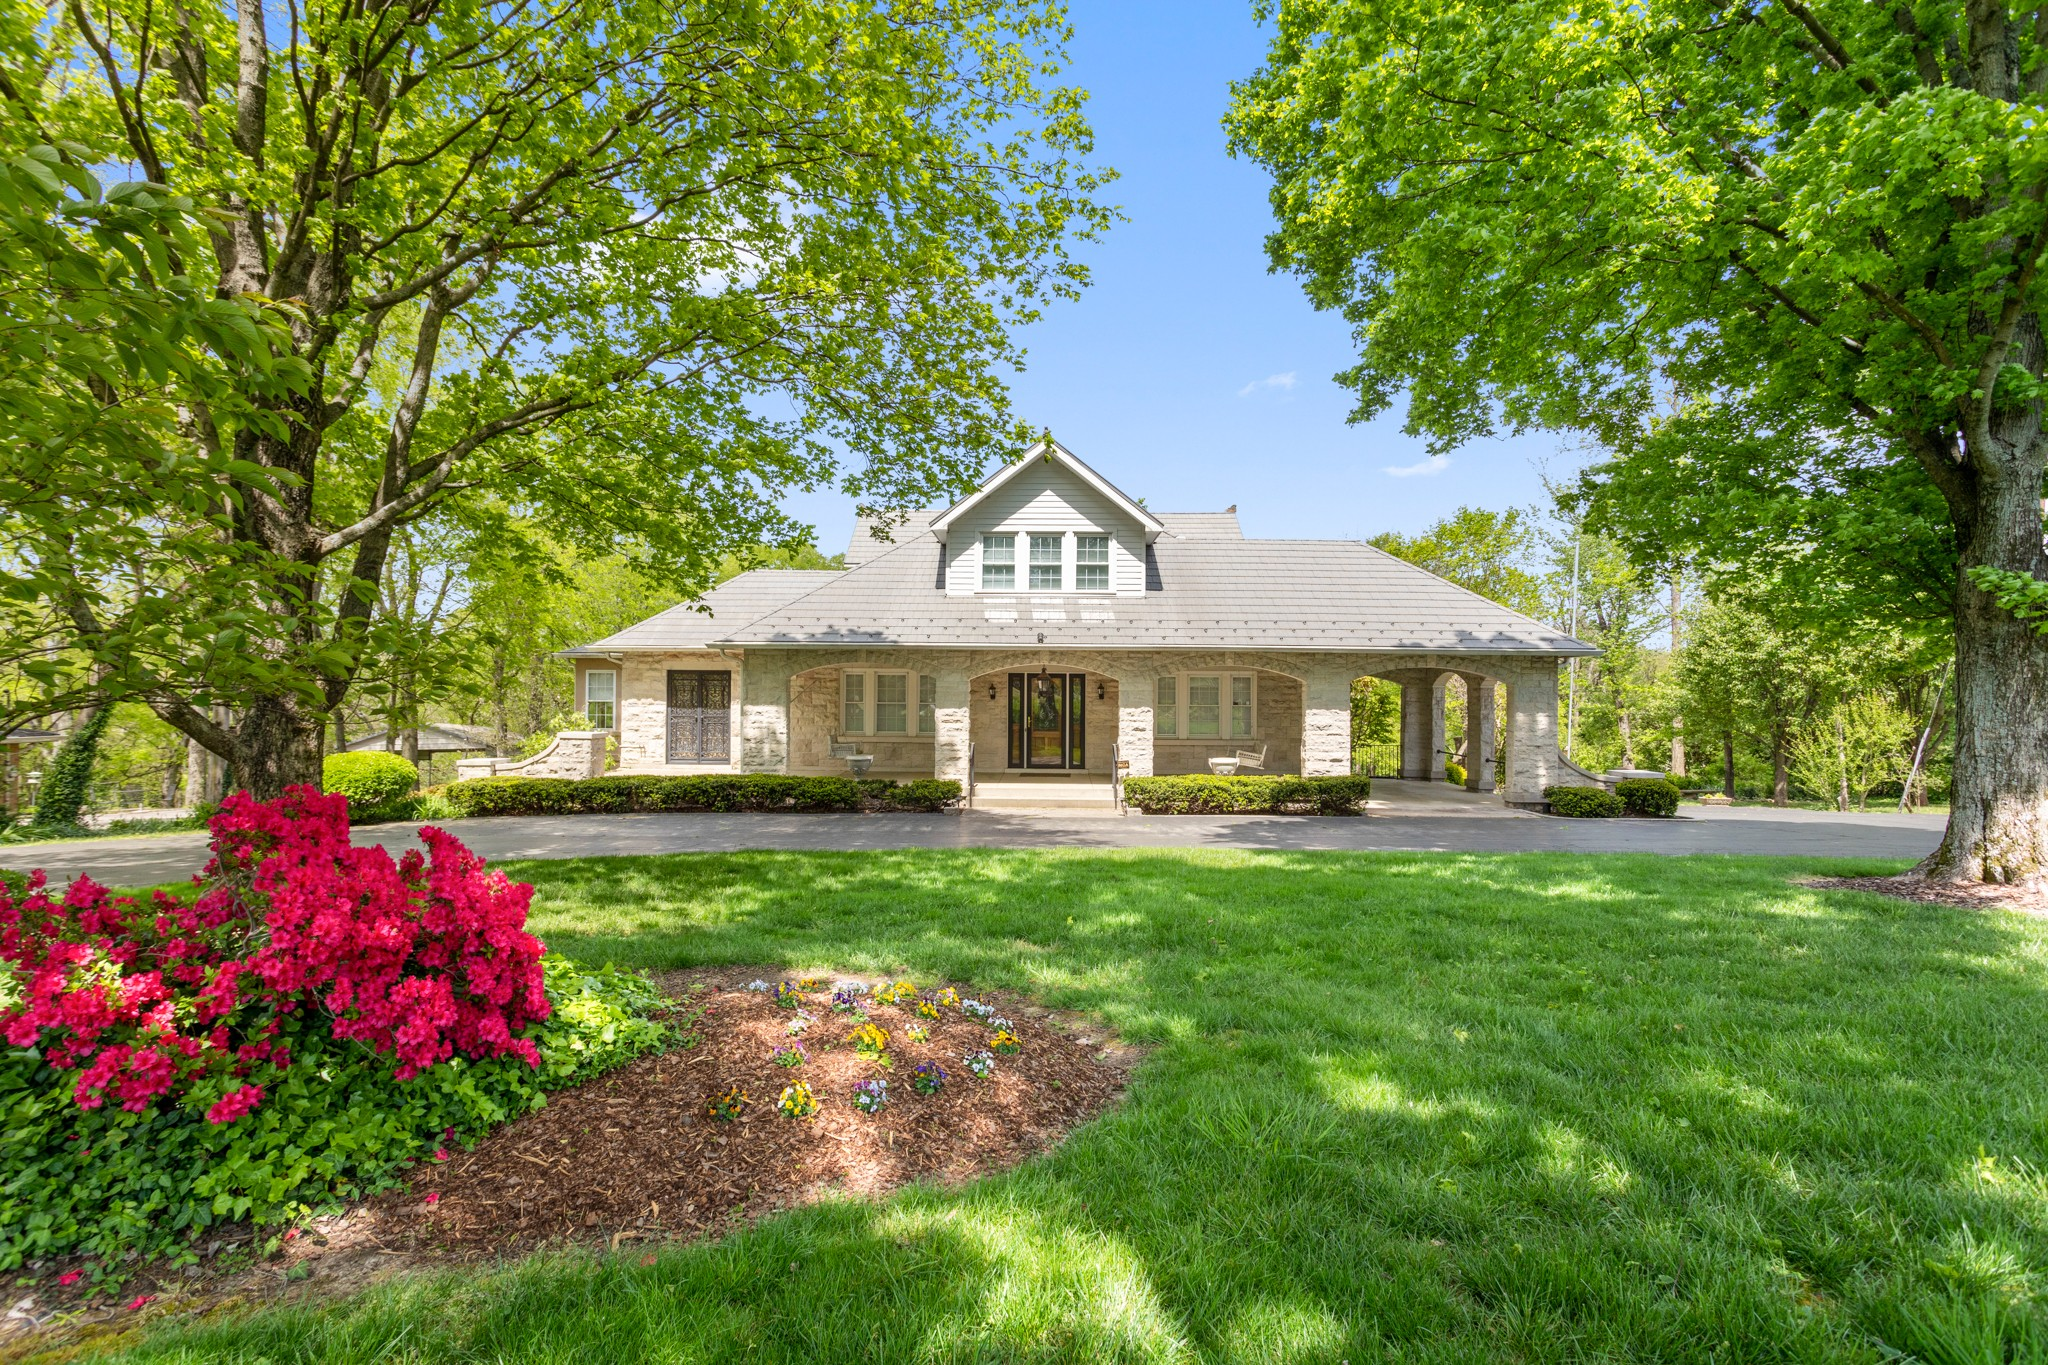 308 W Due West Ave, Madison, TN 37115 - Madison, TN real estate listing